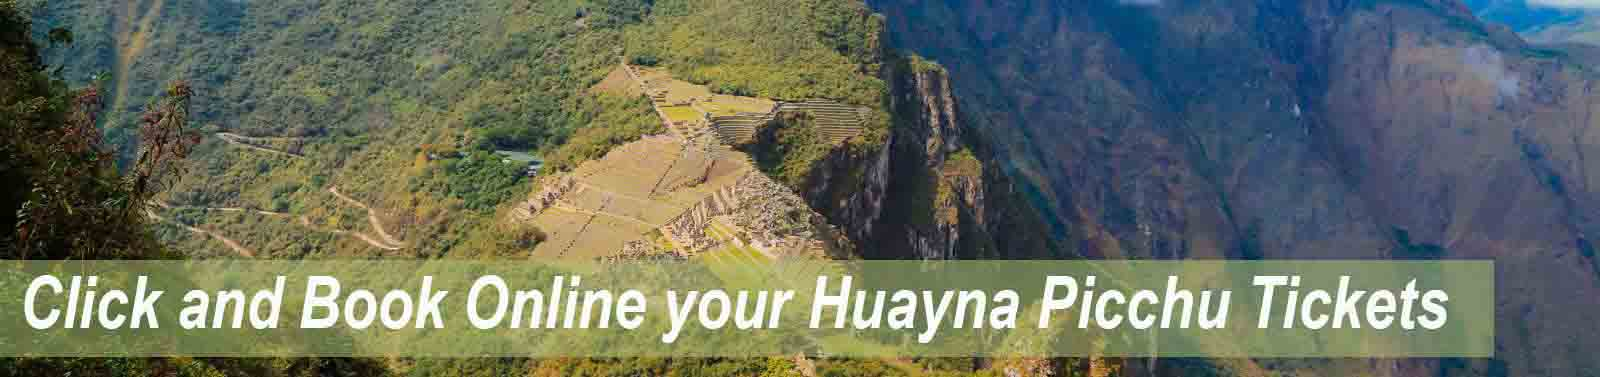 Book Online the Huayna Picchu tickets